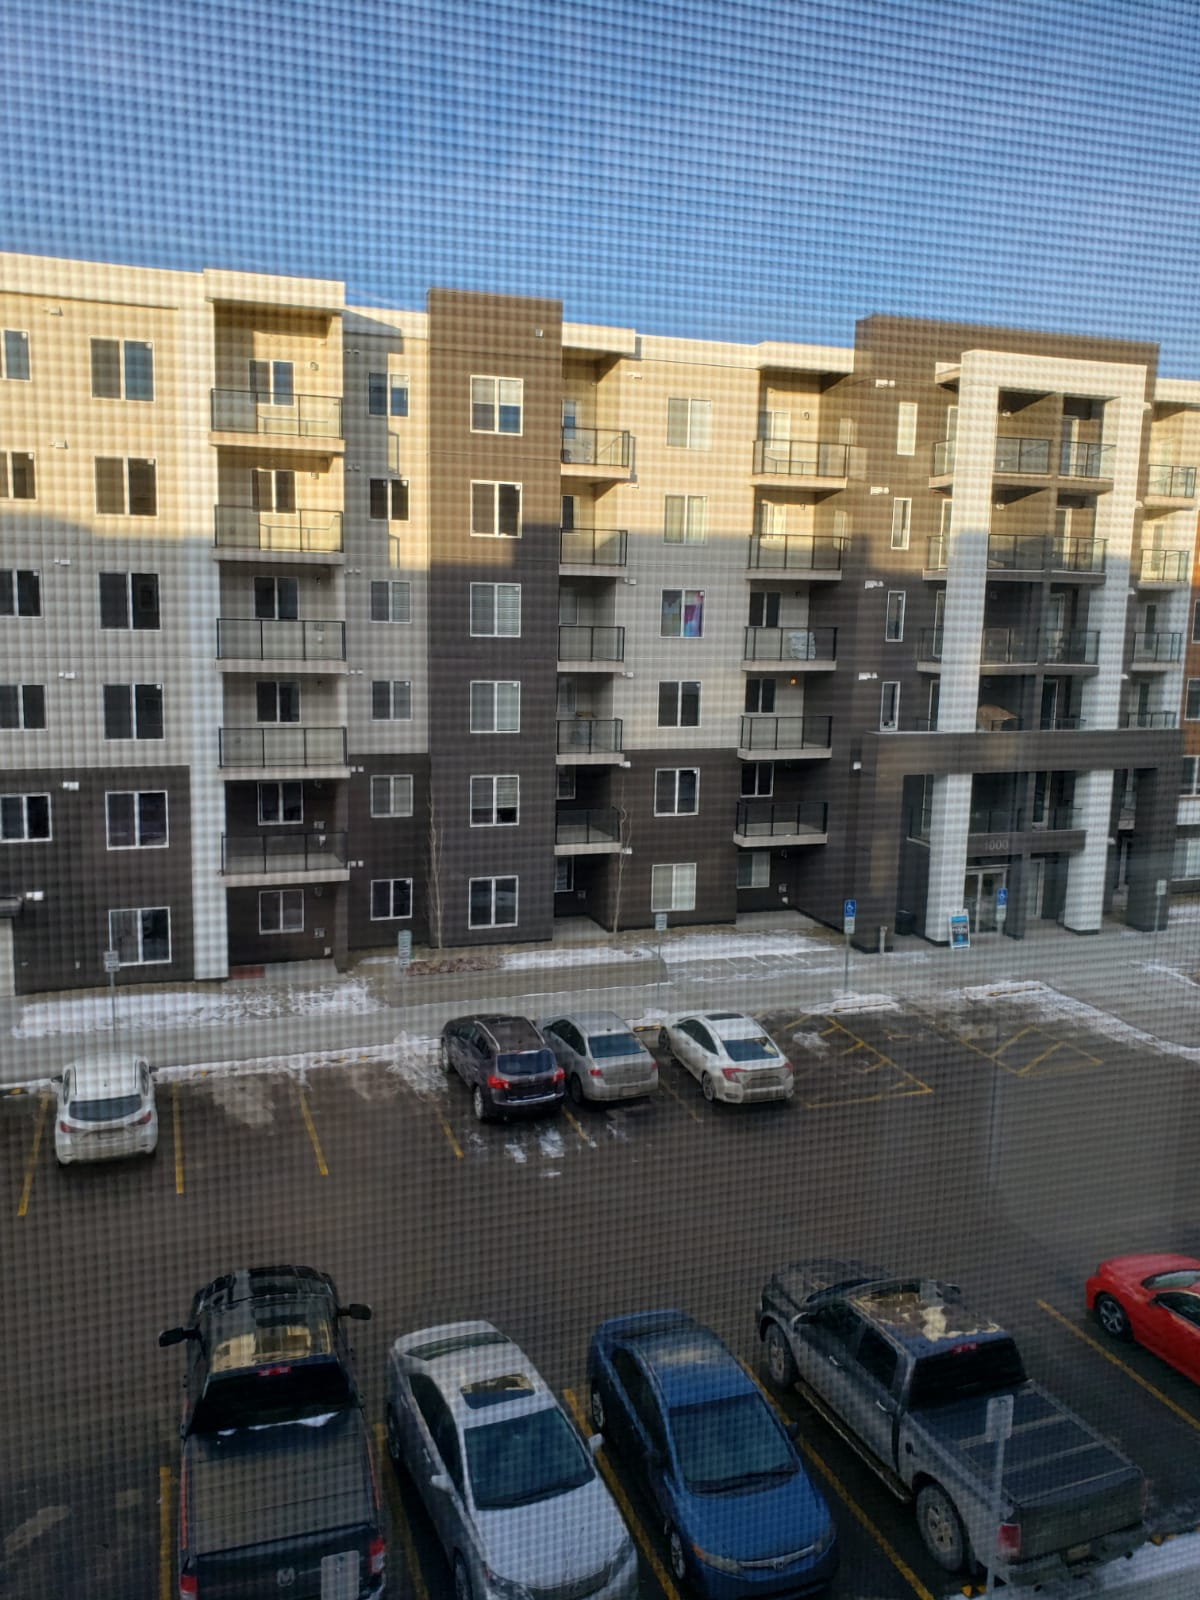 Brand New! 2 bdrms, 1 bath, 4th floor apartment in Skyview!